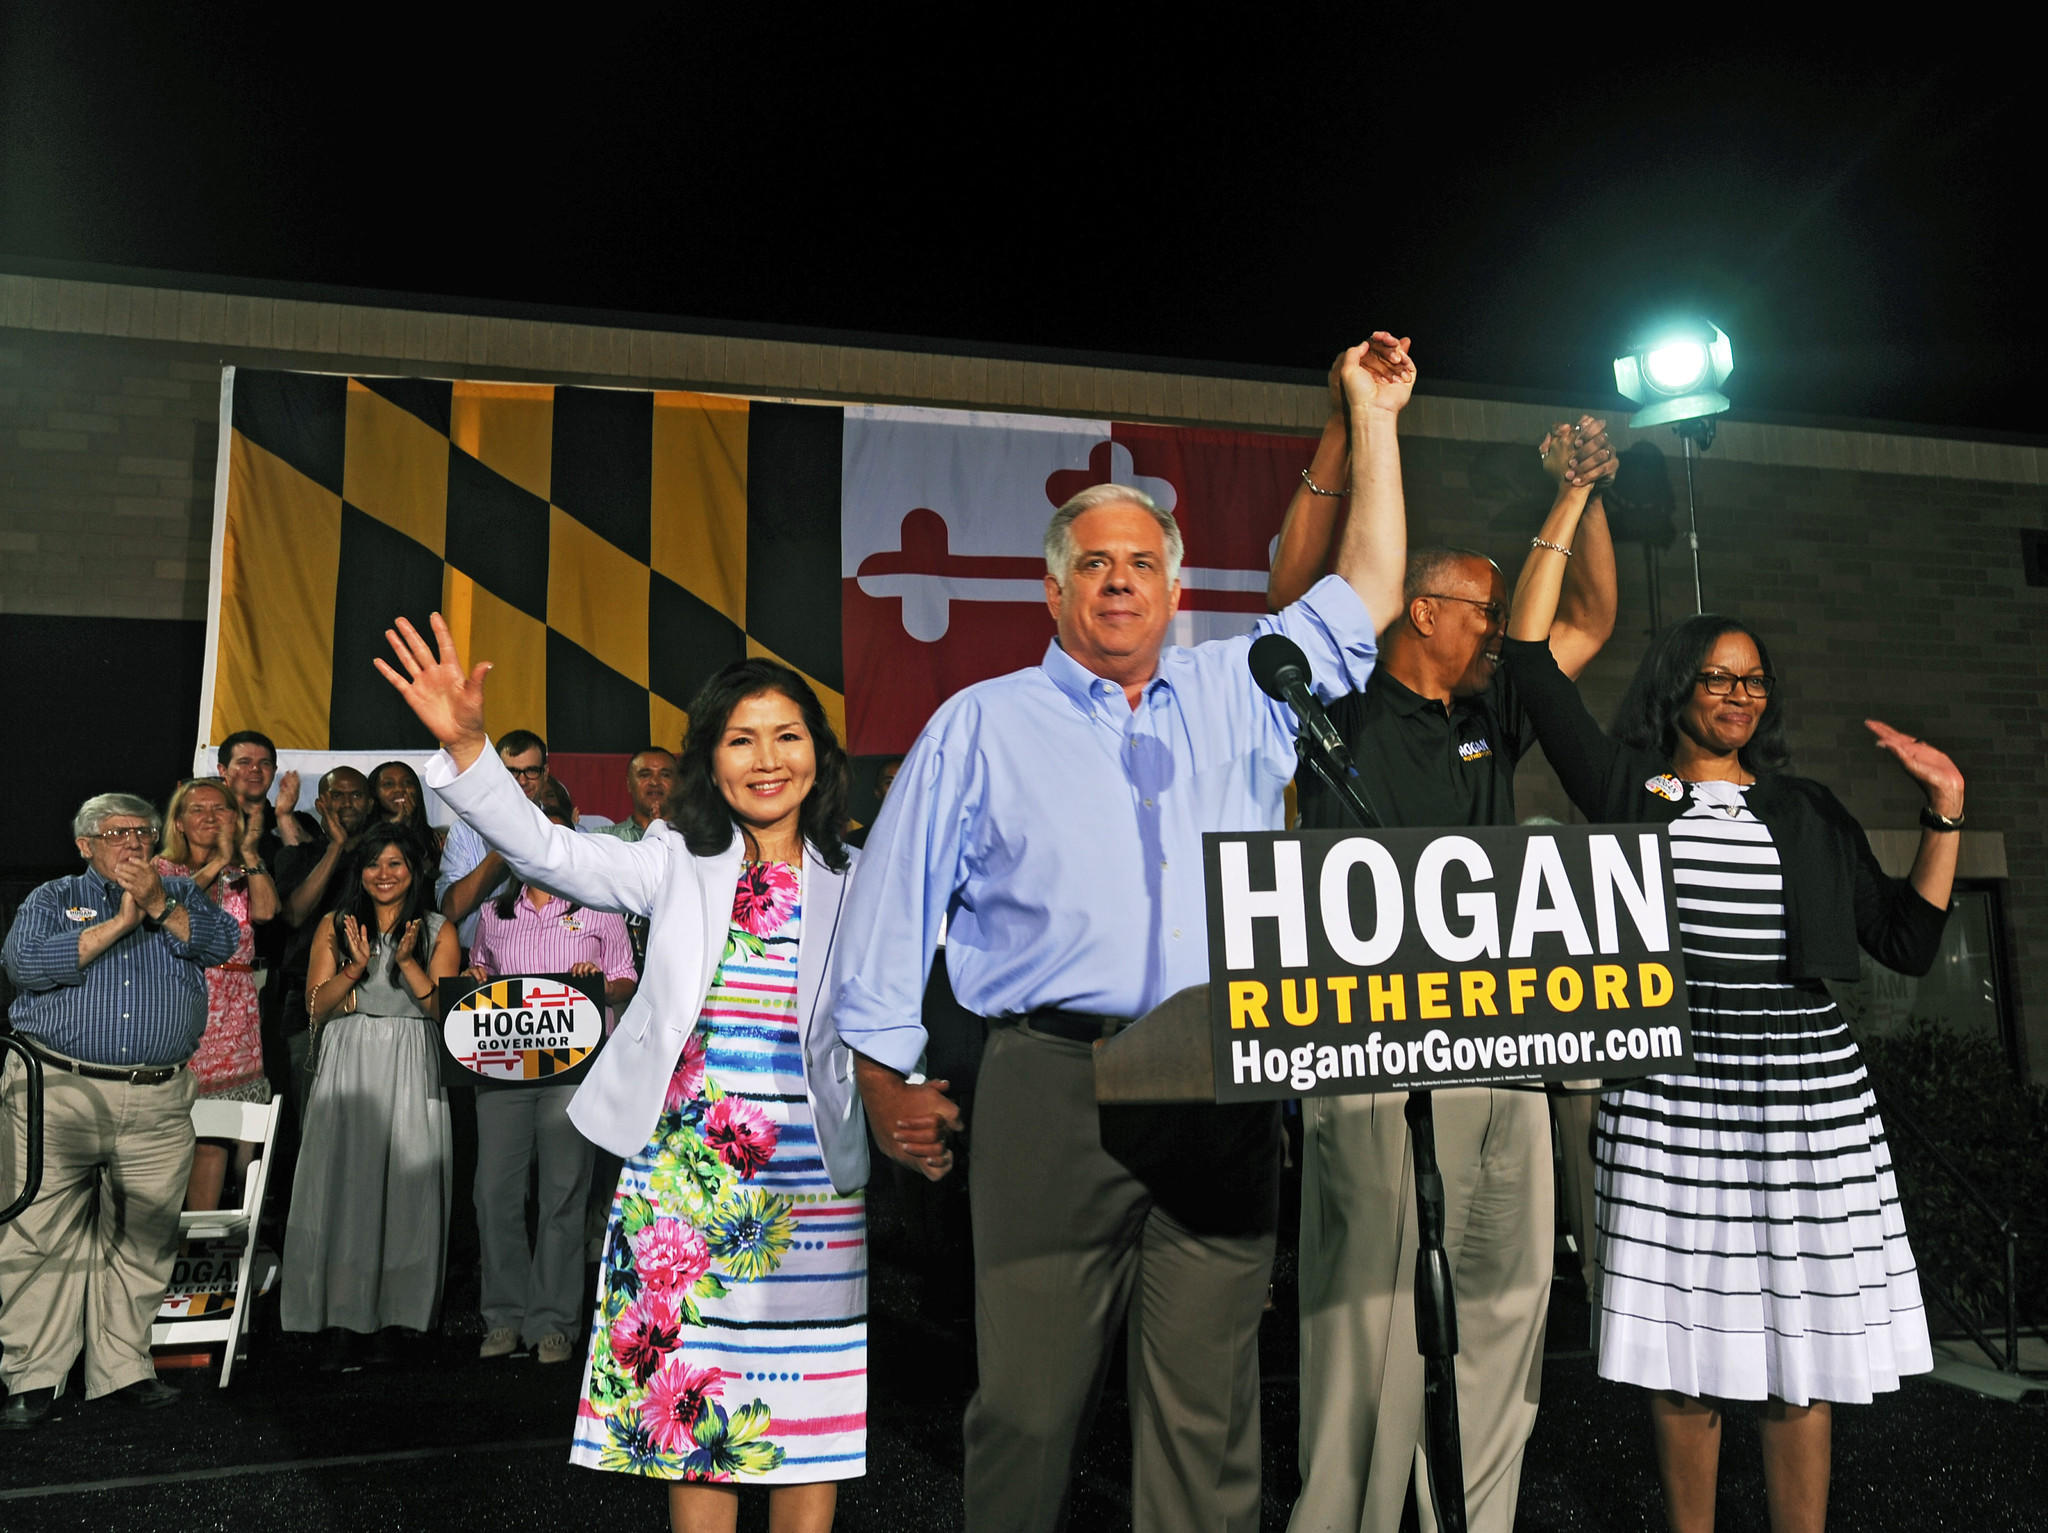 Republican gubernatorial candidate Larry Hogan, second left, and running mate Boyd Rutherford, third from left, and their respective spouses, Yumi Hogan, left, and Monica Rutherford, right, wave to supporters after declaring their primary victory outside their campaign headquarters.